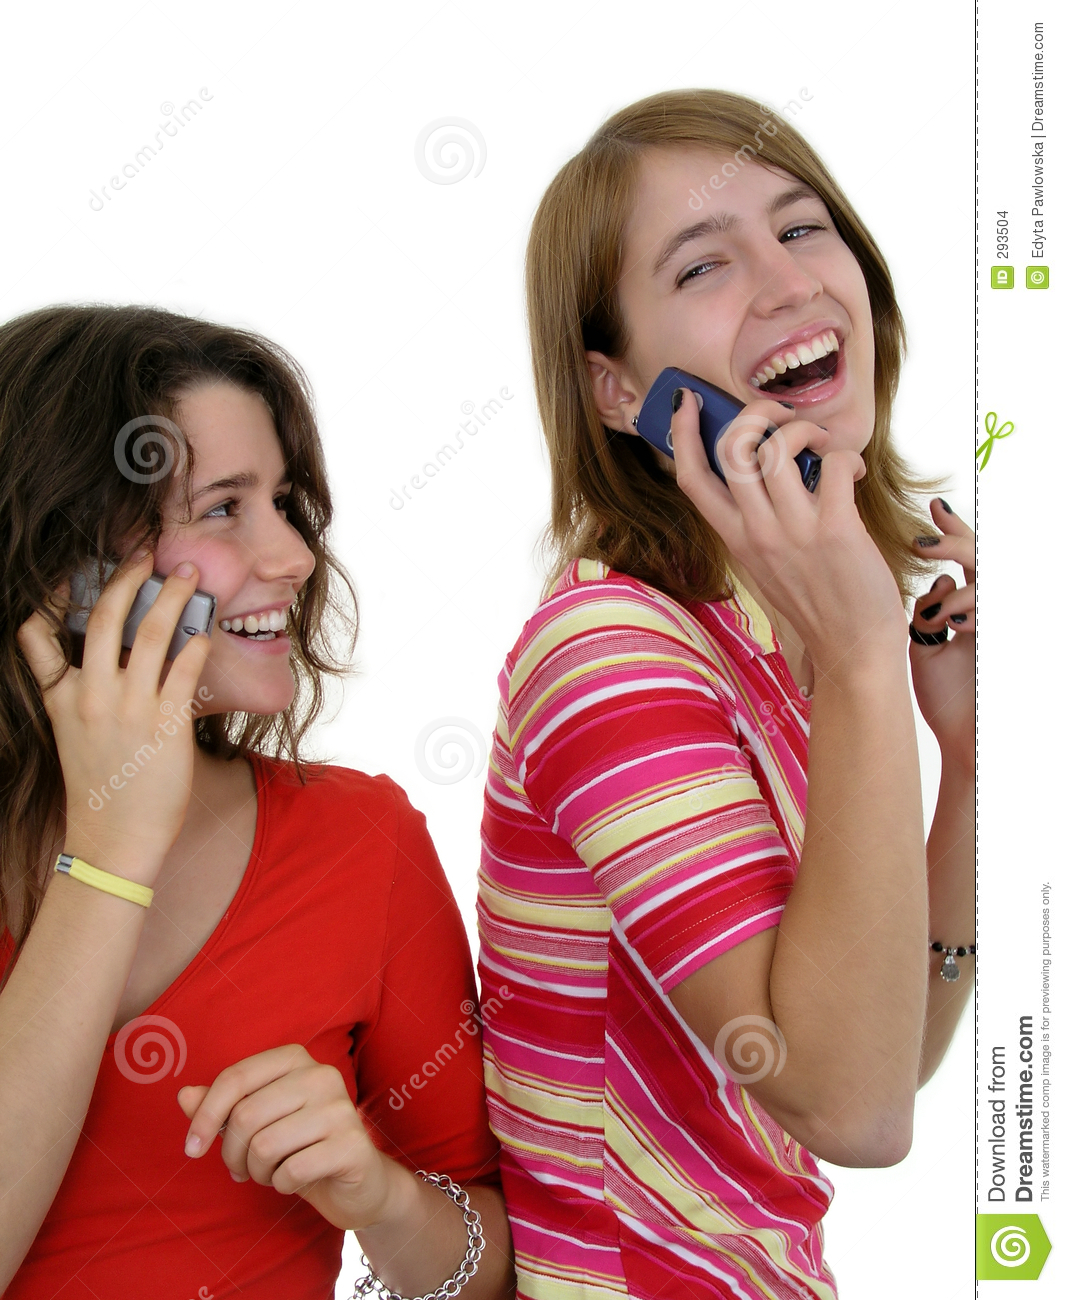 Two Girls Using Mobile Phones Stock Images - Image: 293504